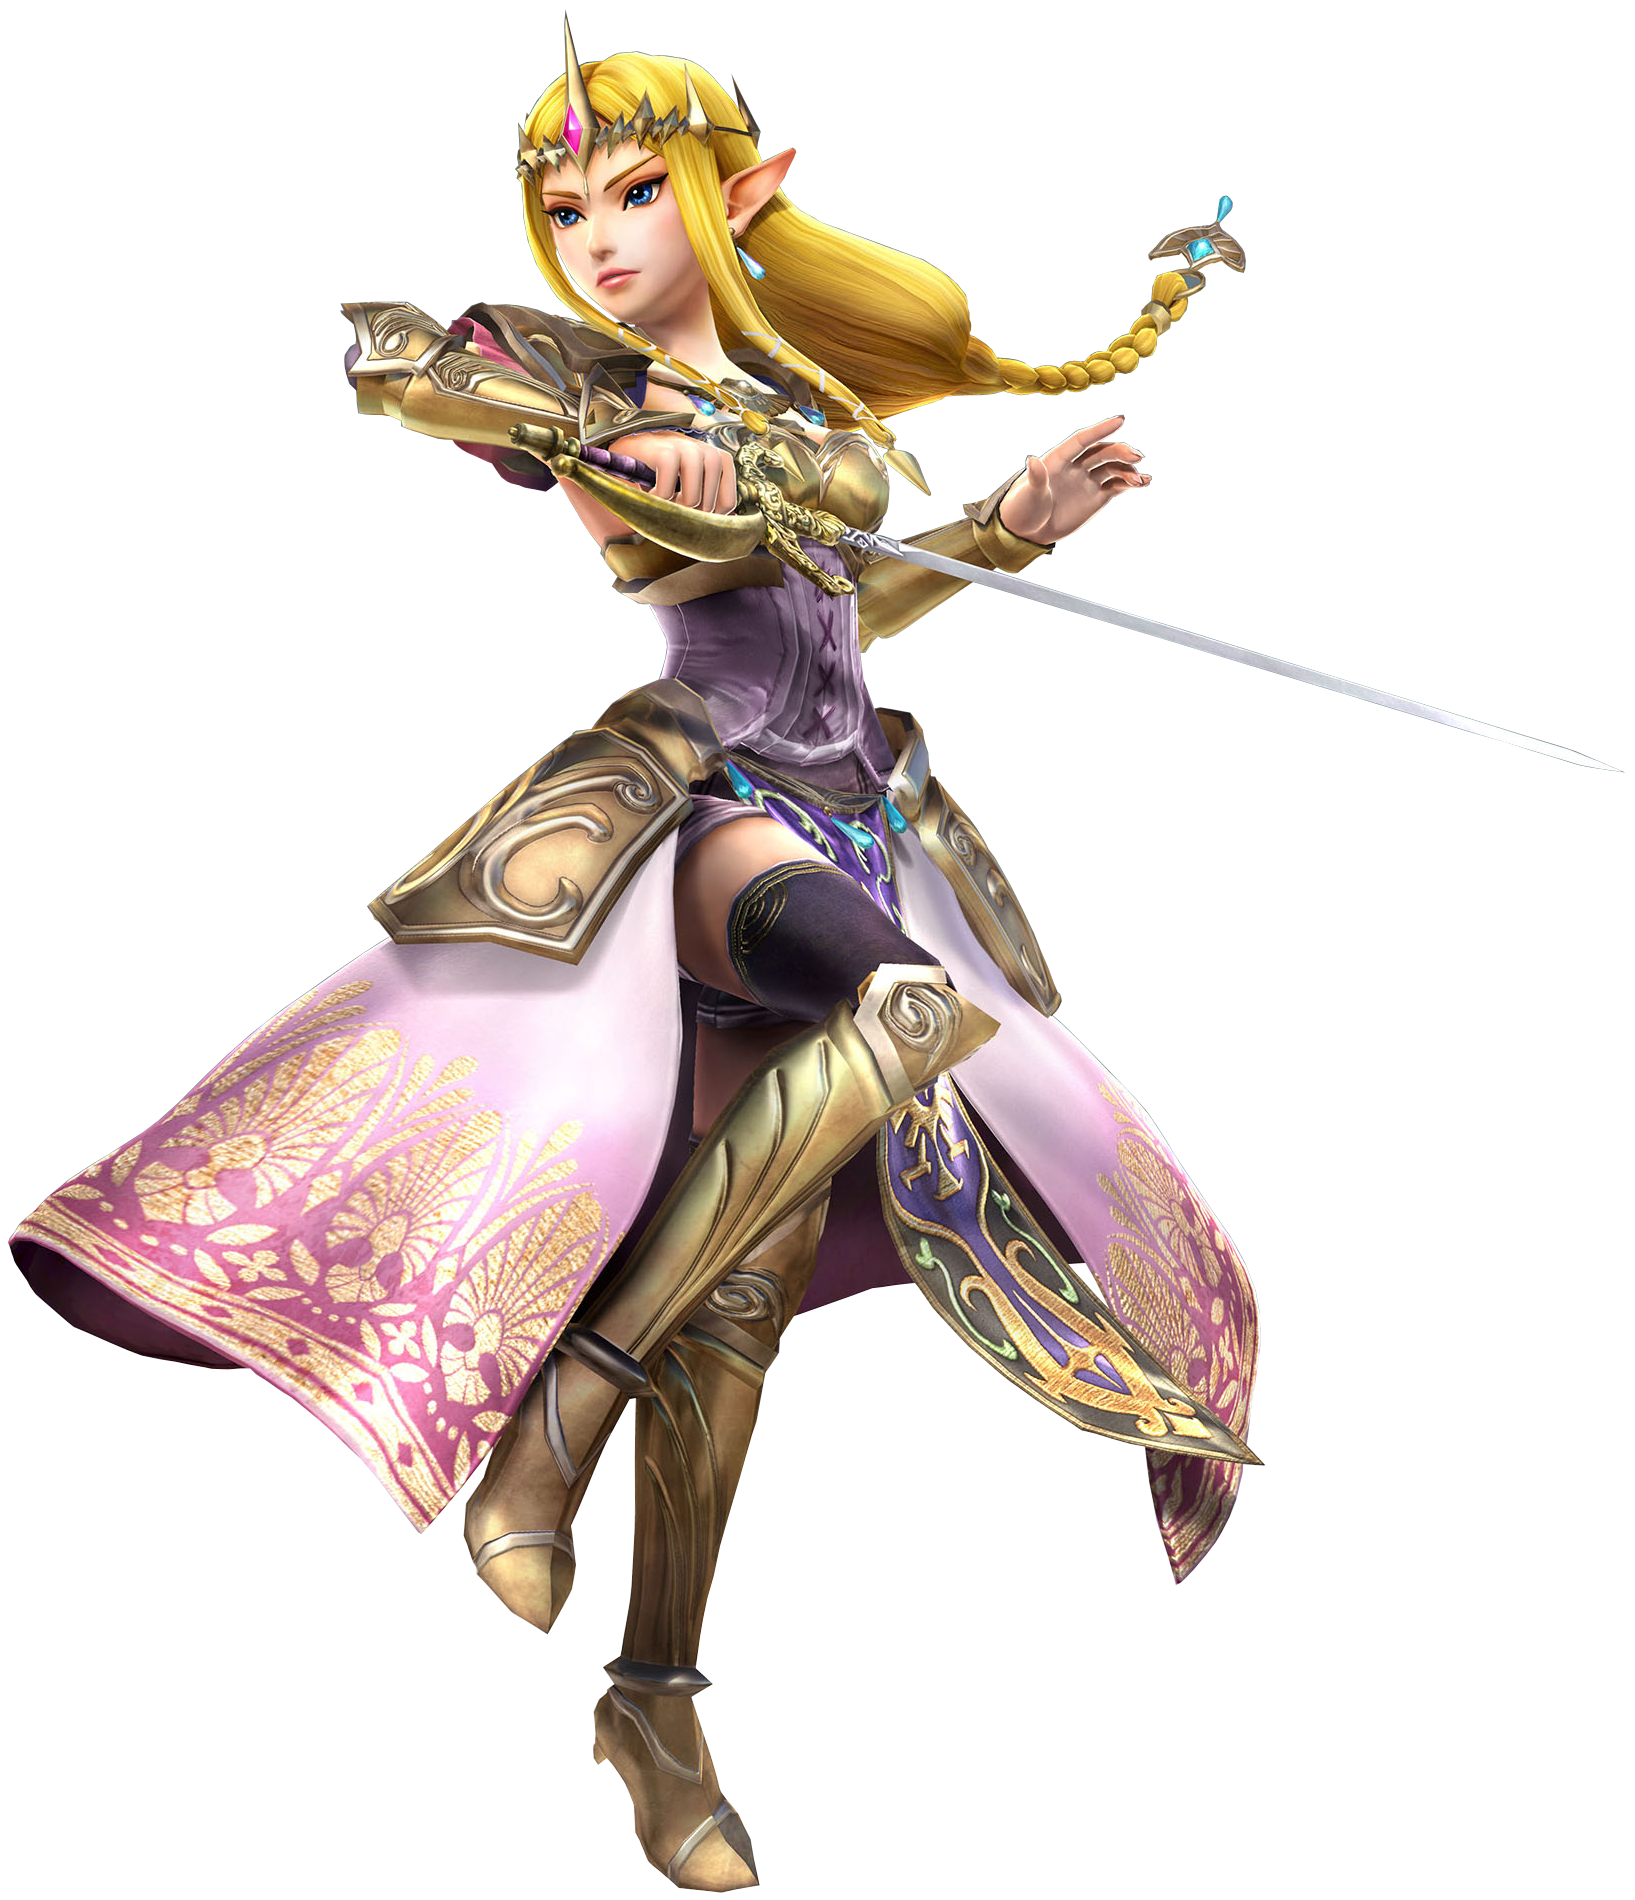 jpg royalty free download Transparent character zelda. The legend of characters